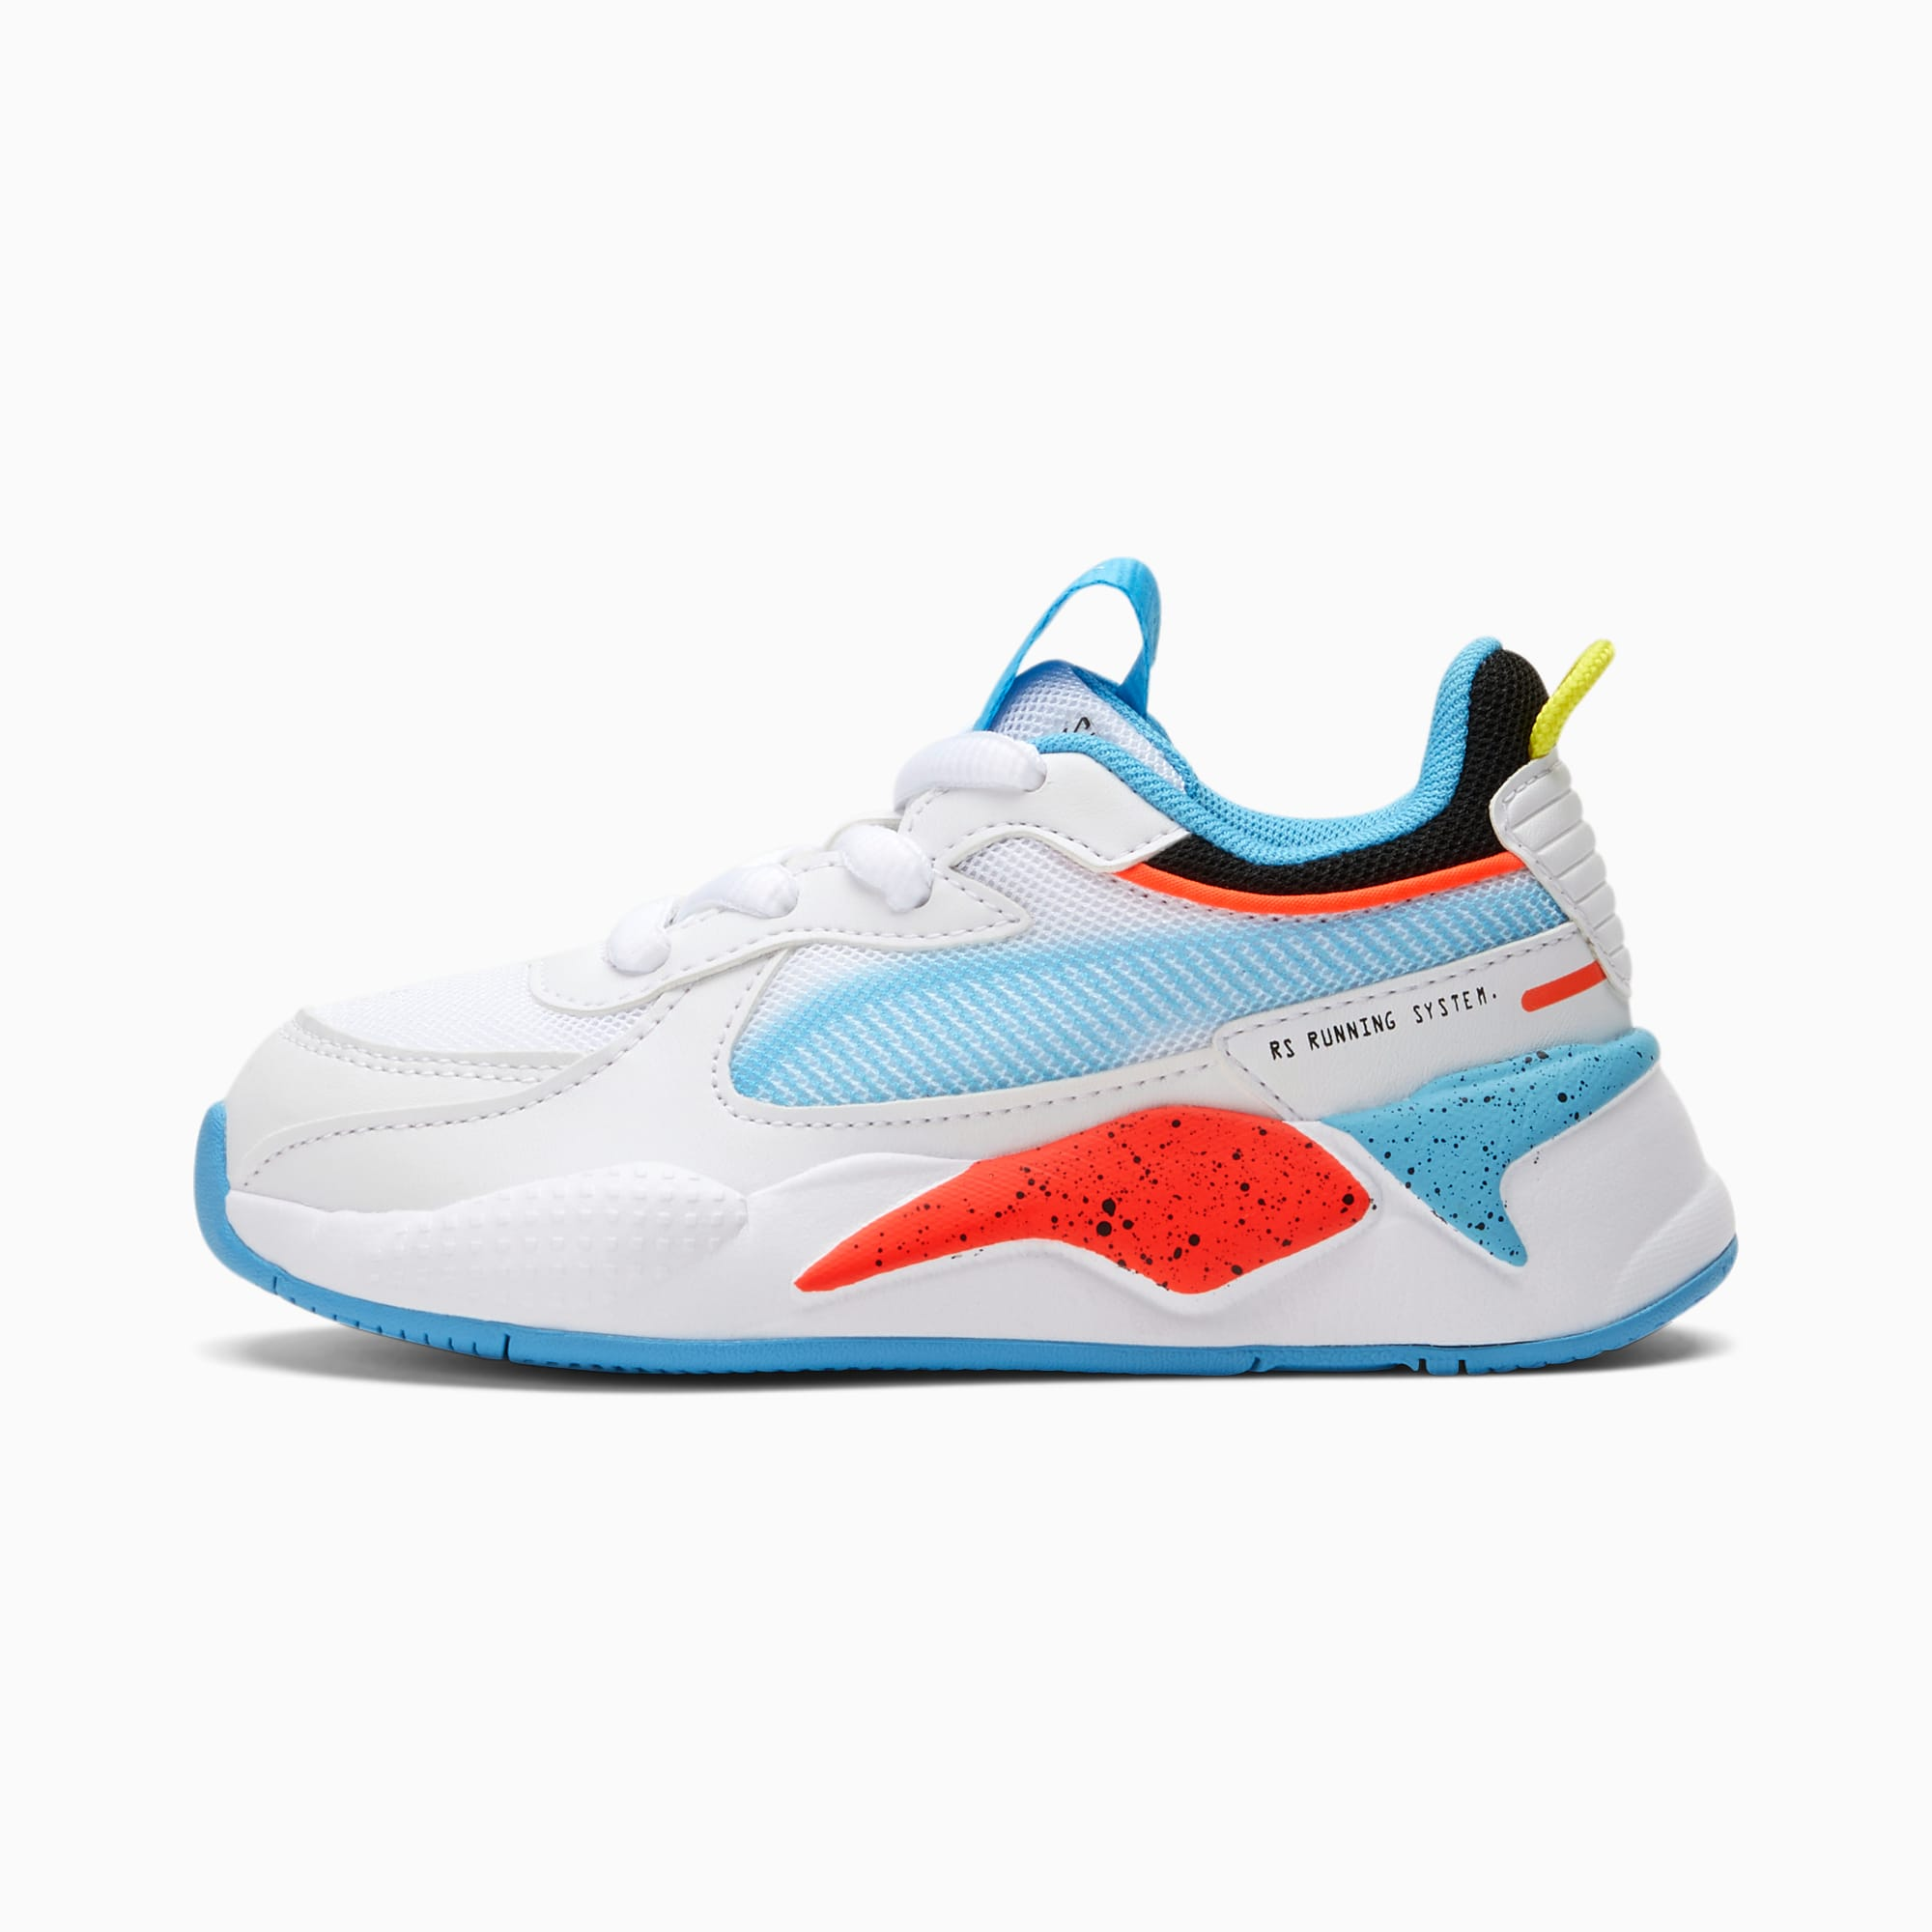 RS-X Airbrush Little Kids' Shoes